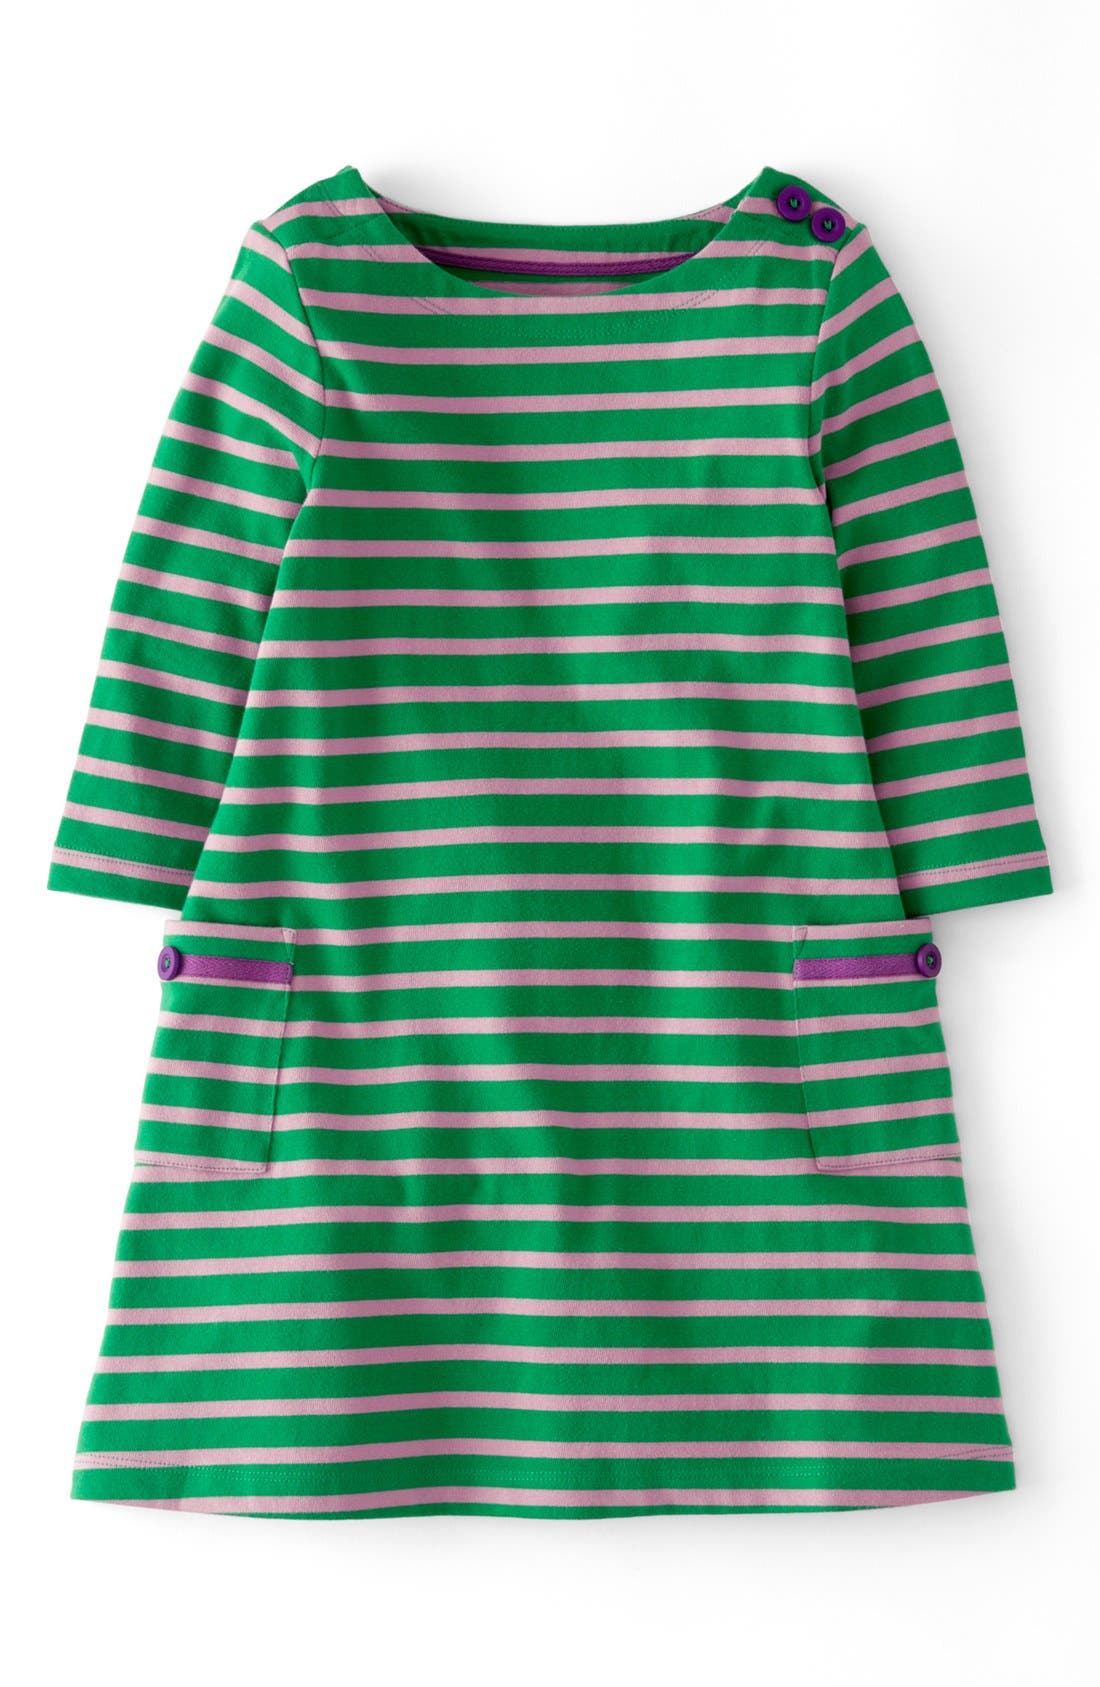 Alternate Image 1 Selected - Mini Boden Stripy Boatneck Dress (Toddler Girls, Little Girls & Big Girls)(Online Only)